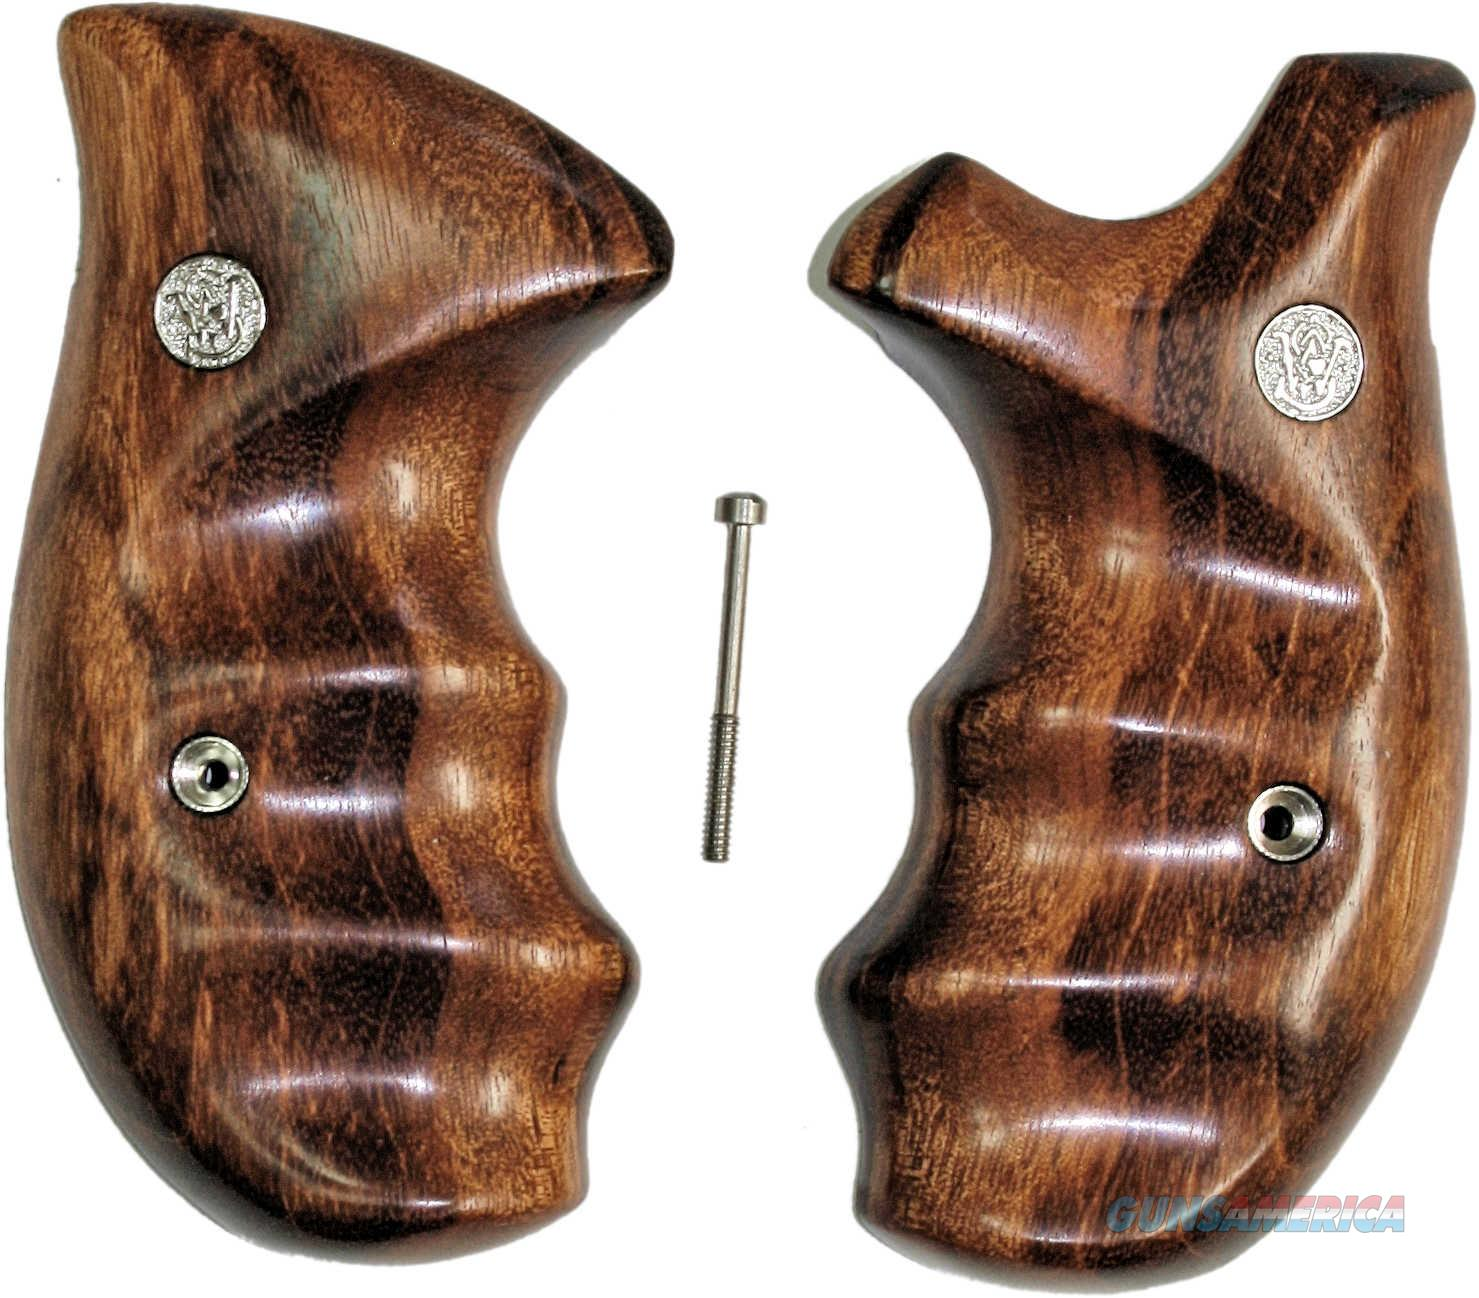 Smith & Wesson K & L Frame Smooth Goncalo Alves Wood Combat Grips, Round Butt  Non-Guns > Gun Parts > Grips > Smith & Wesson